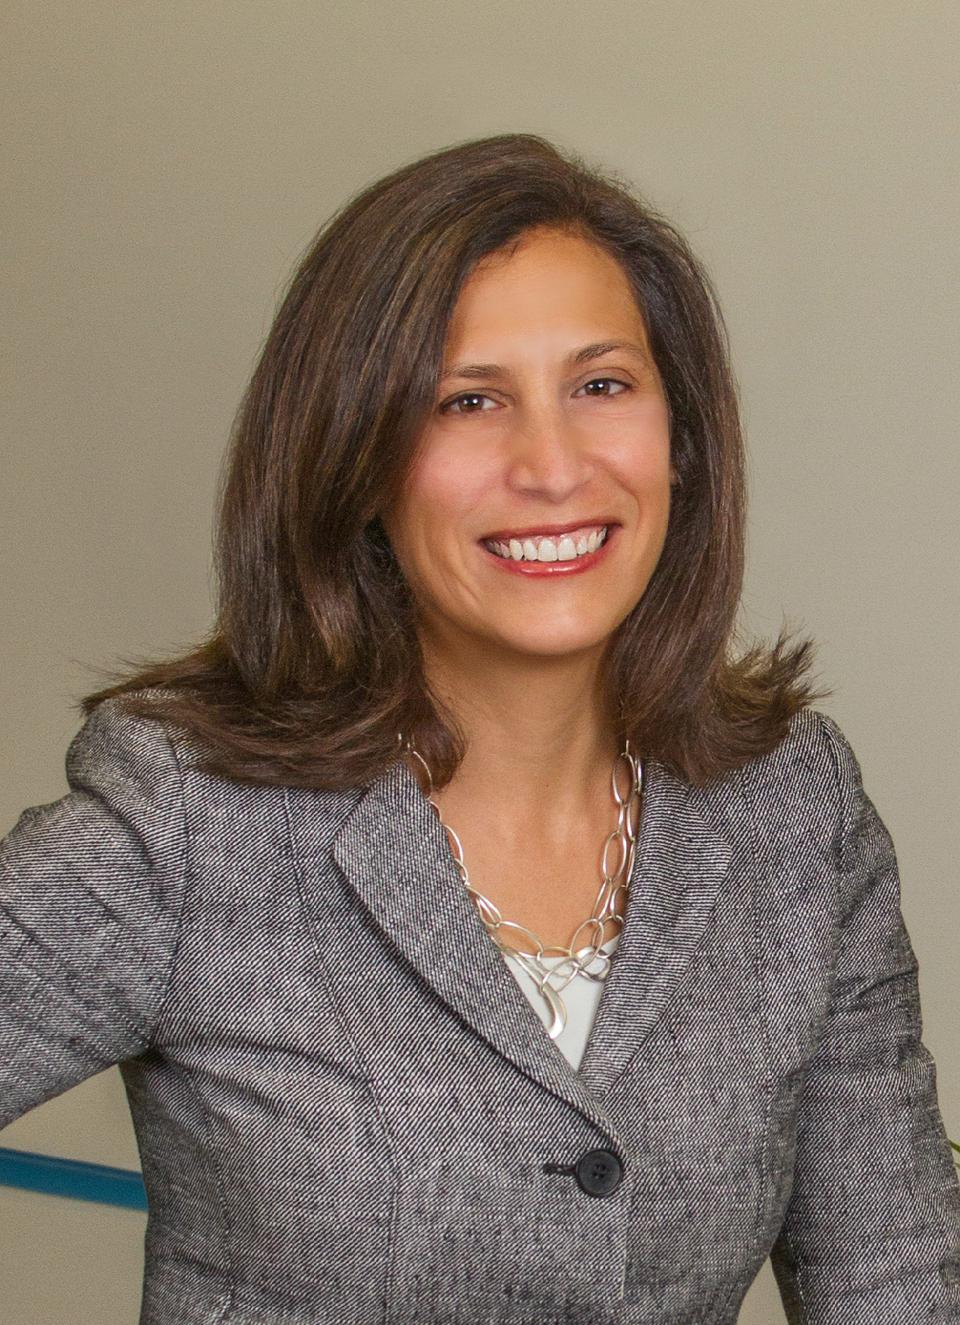 Victoria Espinel, President and Chief Executive Officer, BSA | The Software Alliance